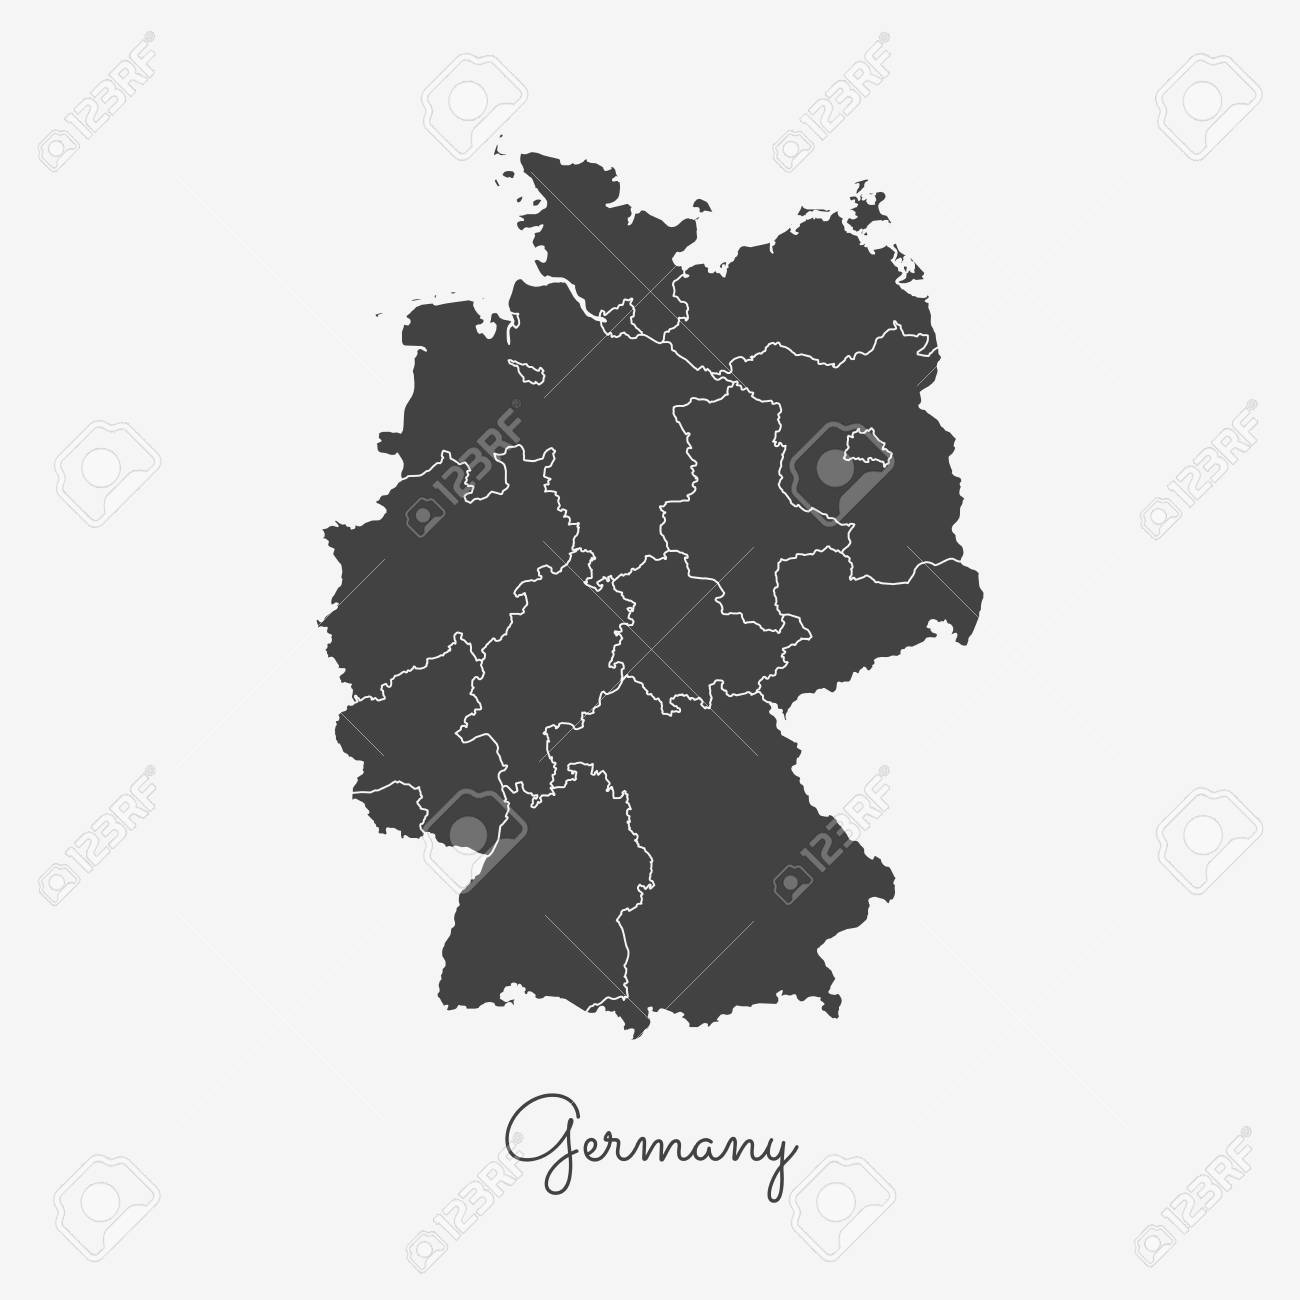 Map Of Germany Regions.Germany Region Map Grey Outline On White Background Detailed